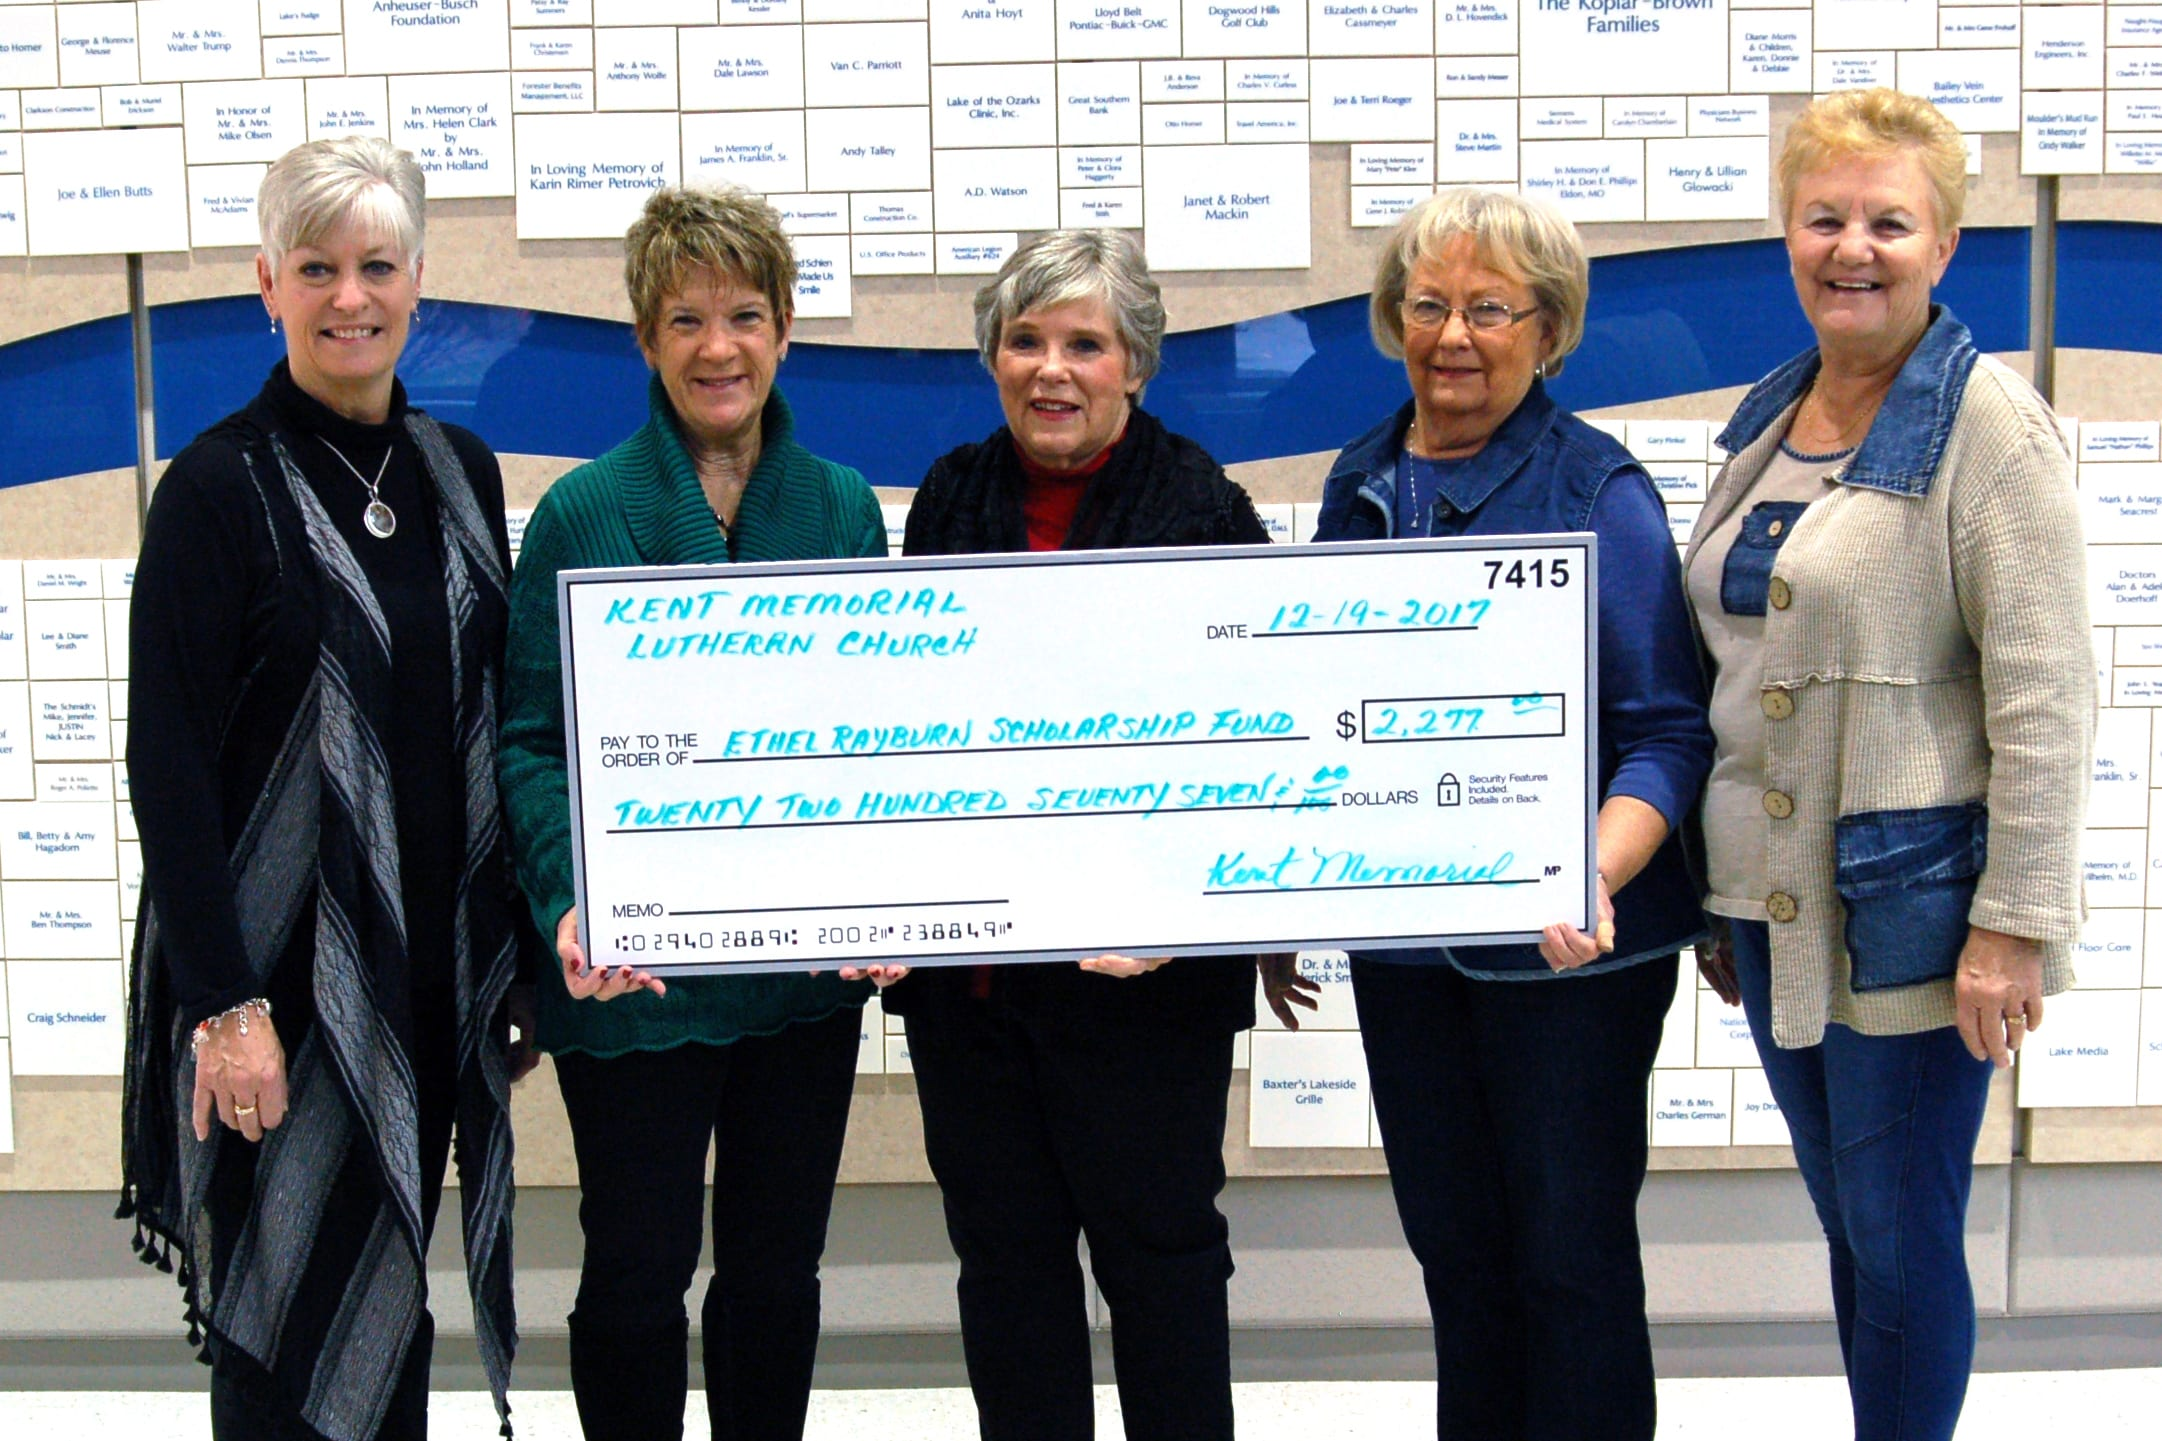 The Women of the Evangelical Lutheran Church in America organization at Kent Memorial Lutheran Church present a $2,277 donation to Lake Regional Hospital Auxiliary. Pictured are Jayne Brown, Auxiliary president; Betty Coleman, Auxiliary past president; and WELCA members Linda Williams, Joyce Wanamaker and Eldeen Hanke.